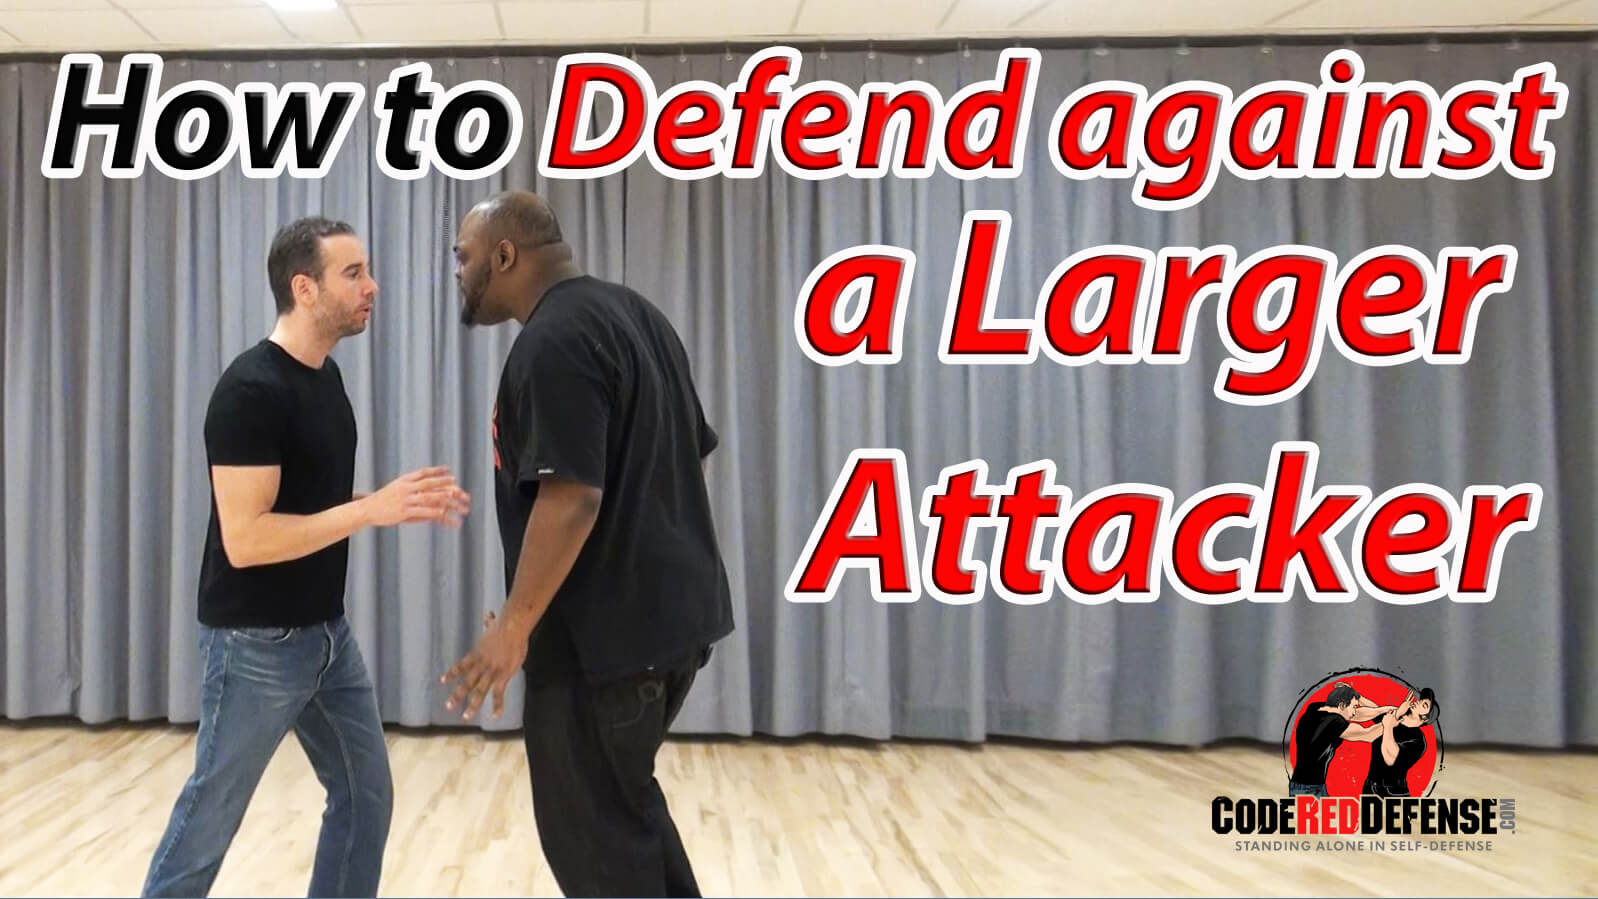 Learn How to Defend Yourself Against a Larger Attacker